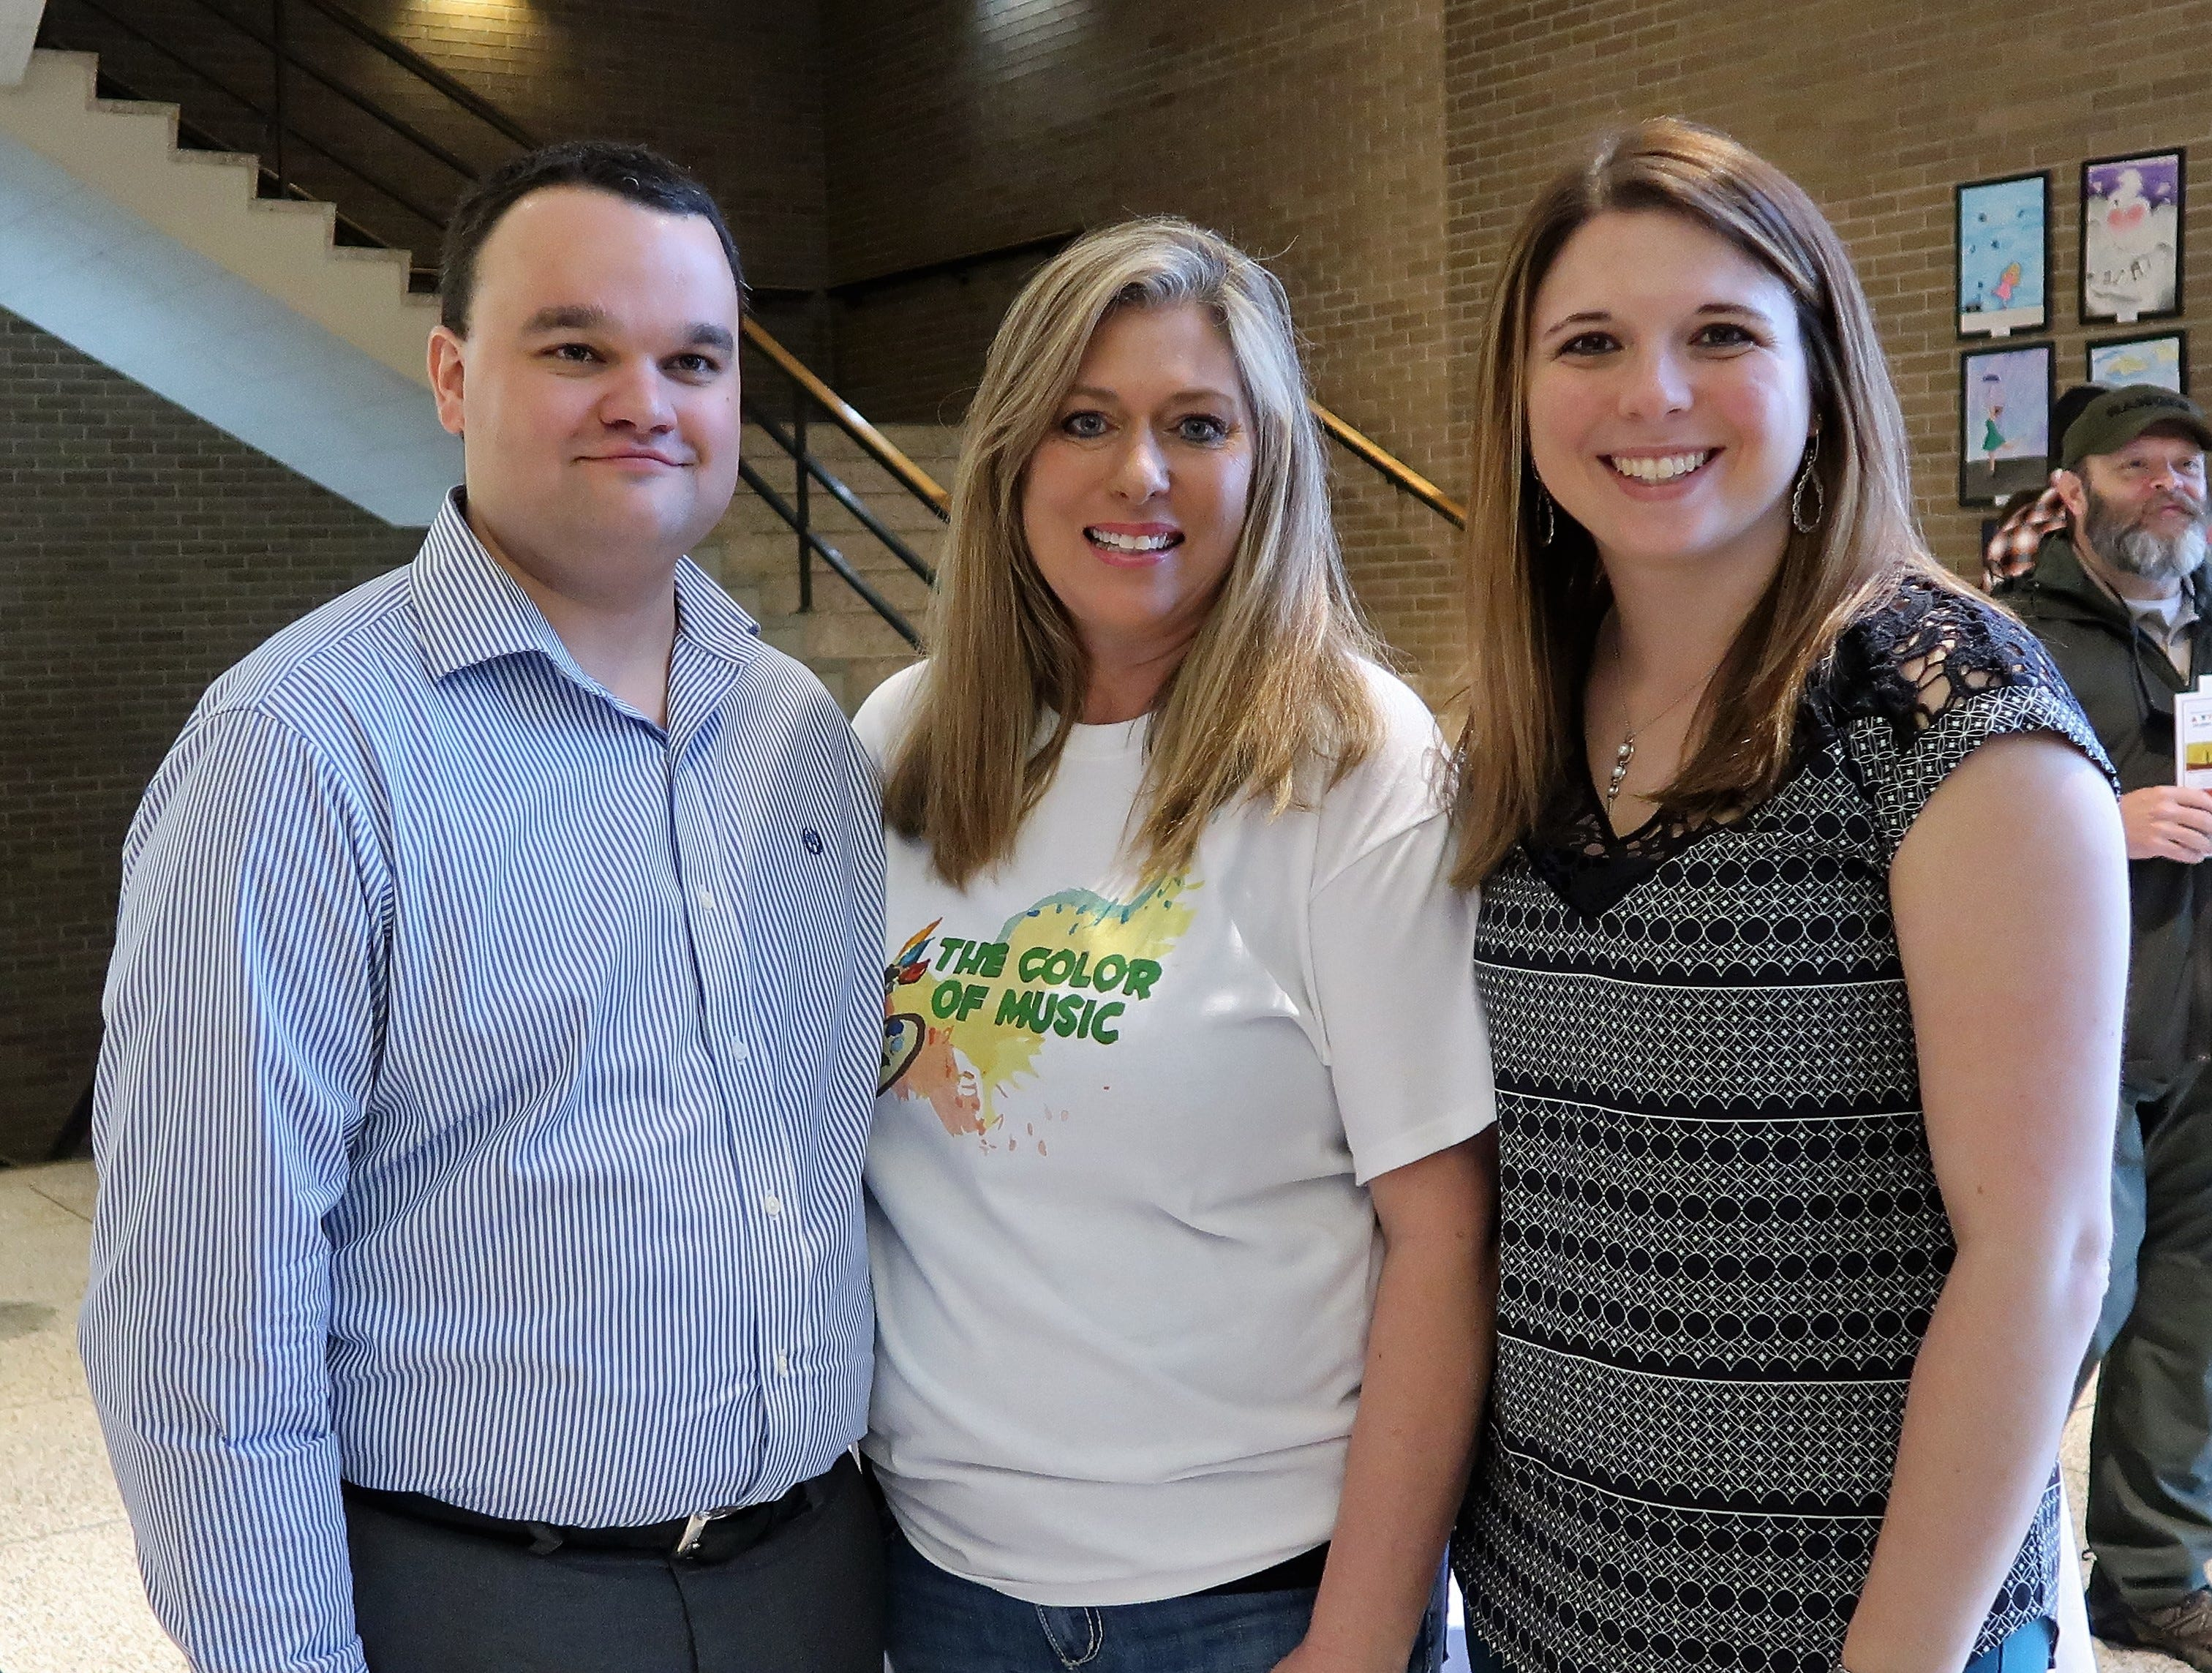 Jackson Symphony League President Elect Cody Blue Miller poses with event co-chair Chrisi Haynes and Jackson Symphony League Marketing Director Caitlin Roach at the 2019 Color of Music awards at the Carl Perkins Civic Center in Jackson on Saturday, April 13.